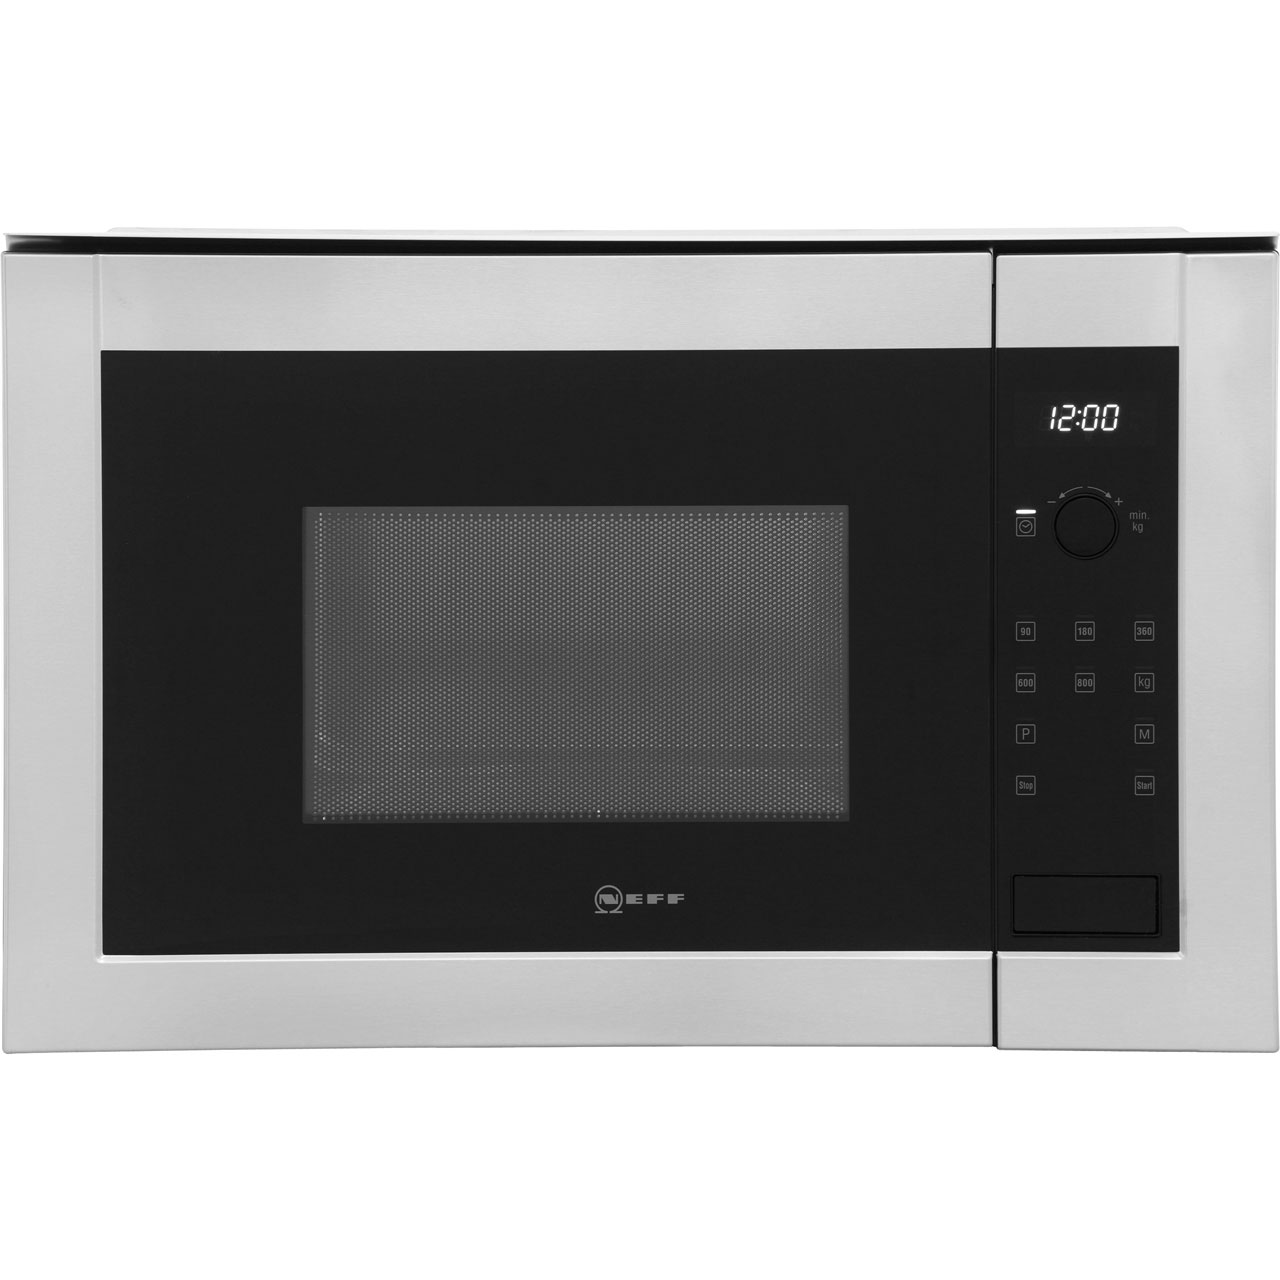 Neff H11we60nog Built In Microwave Oven Direct Discounts